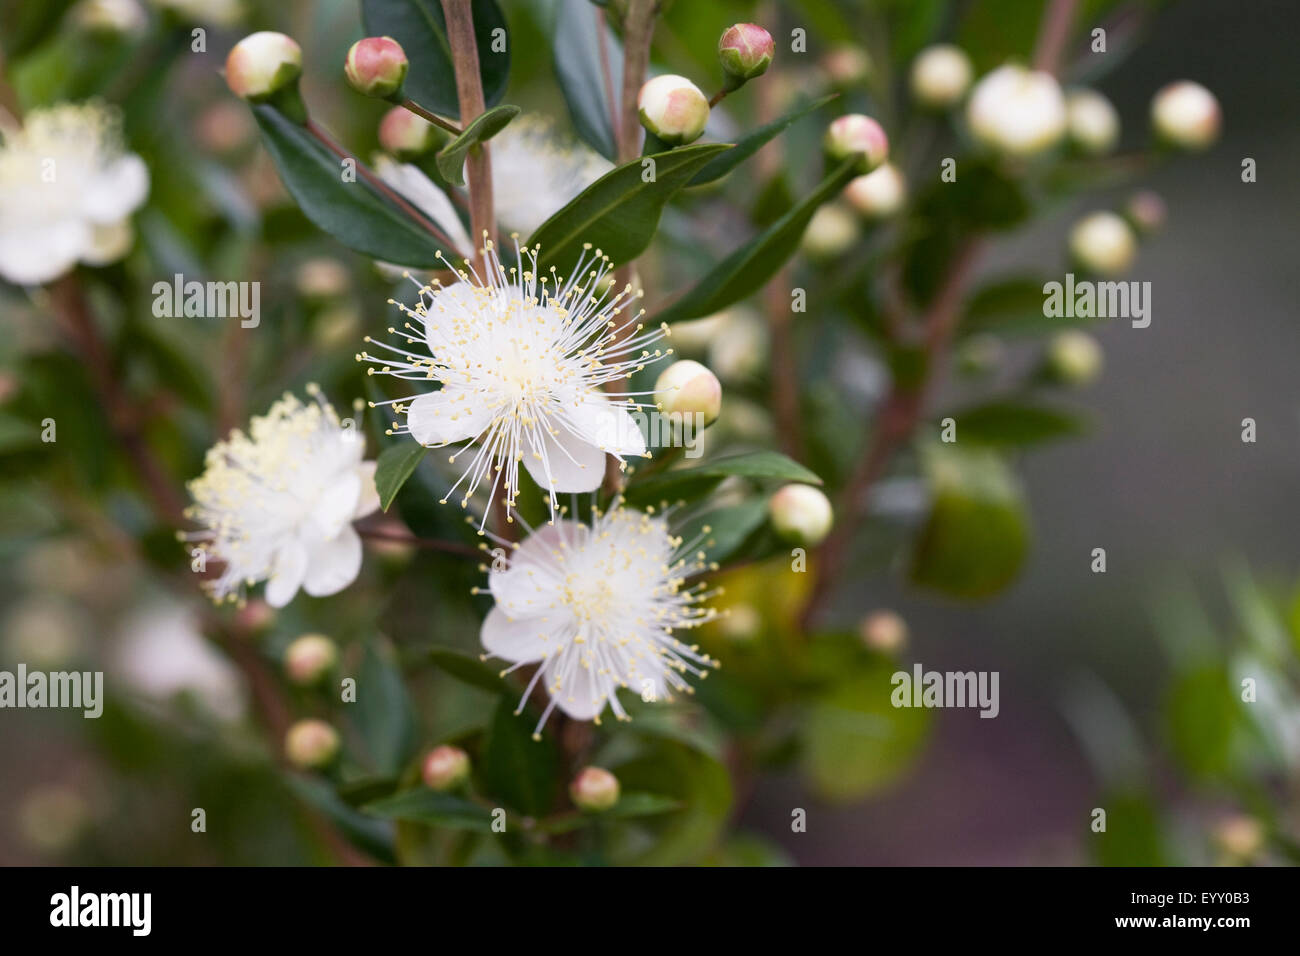 Myrtus Communis High Resolution Stock Photography And Images Alamy